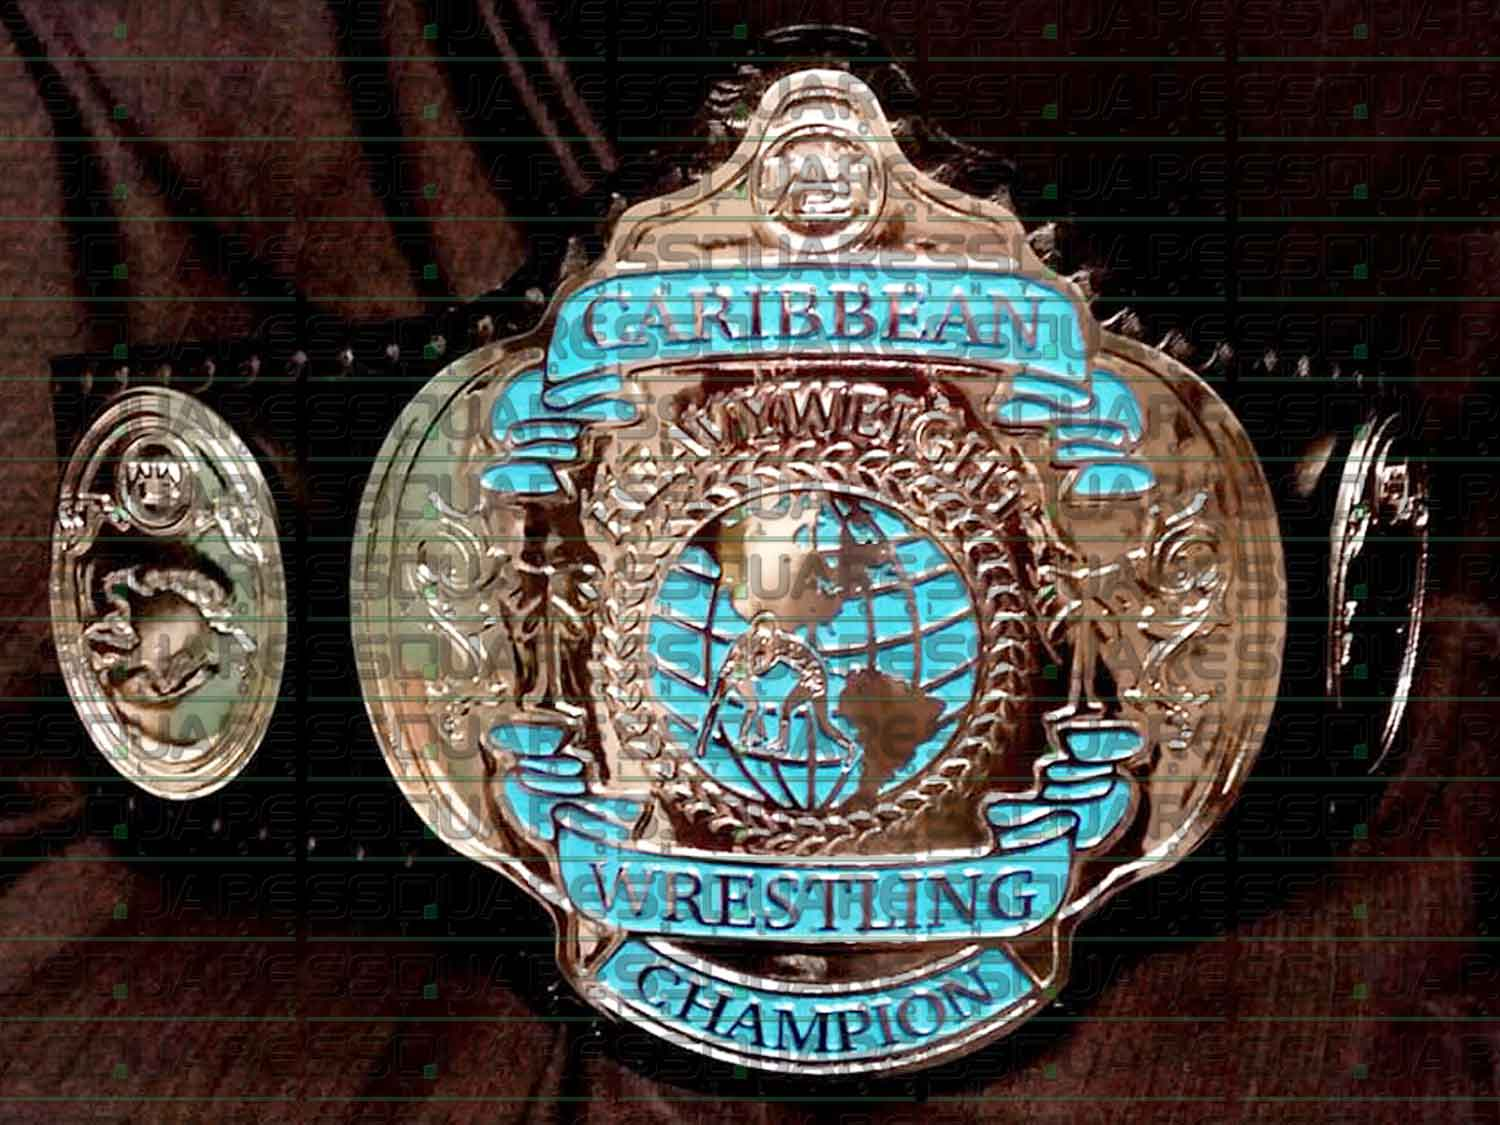 Caribbean Heavyweight Wrestling Champion replica belt